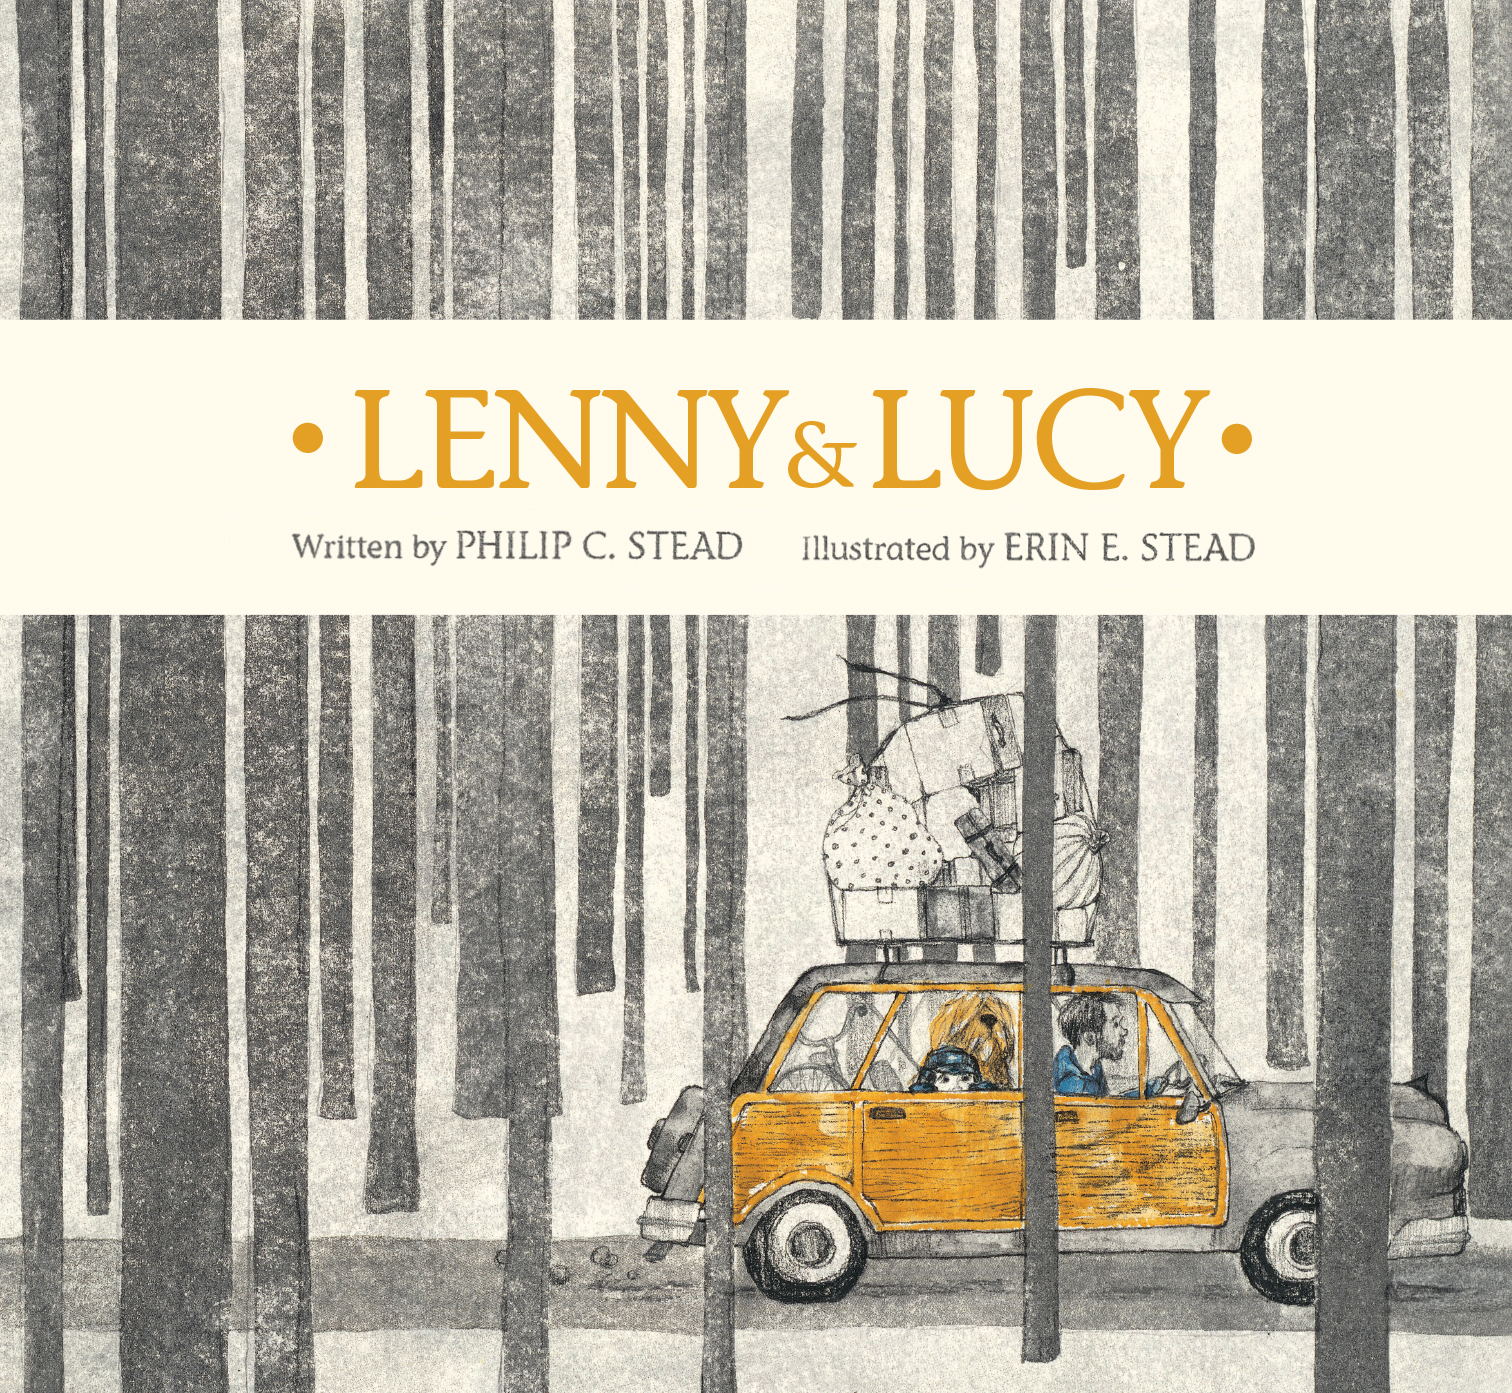 Lenny and Lucy by Philip C. Stead, Erin E. Stead, ISBN: 9781760292119